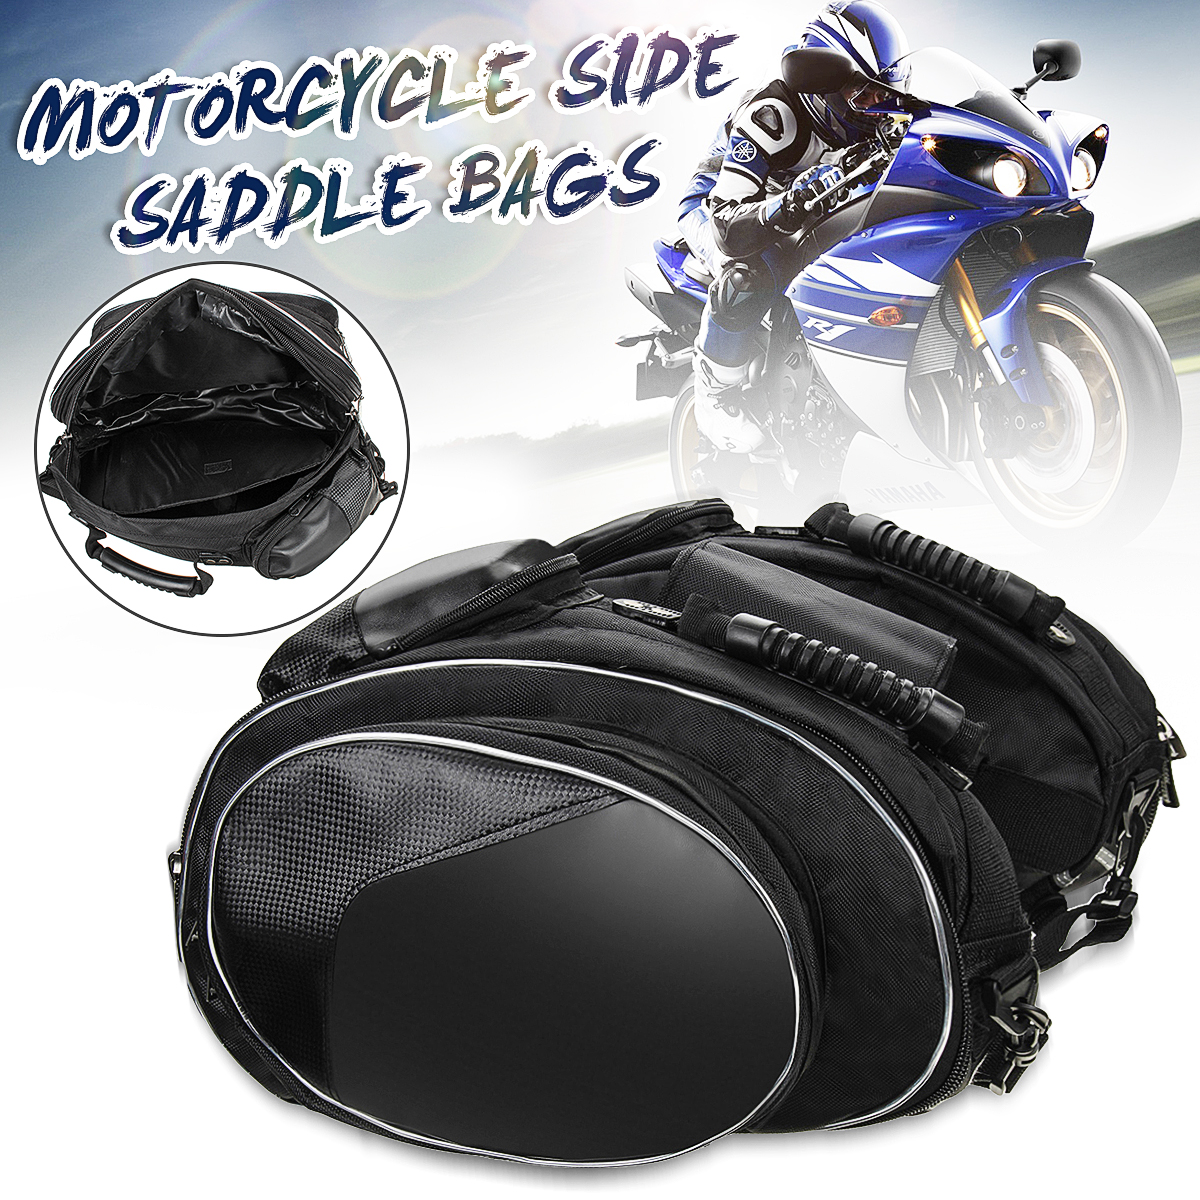 1 Pair Motorcycle Side Saddle Bags Package Bag Black With Waterproof Cover for Motorcycle Mountain Bike Bike Handheld Bag motorcycle capacity luagge side bag leather saddle bag dual sport bike chopper